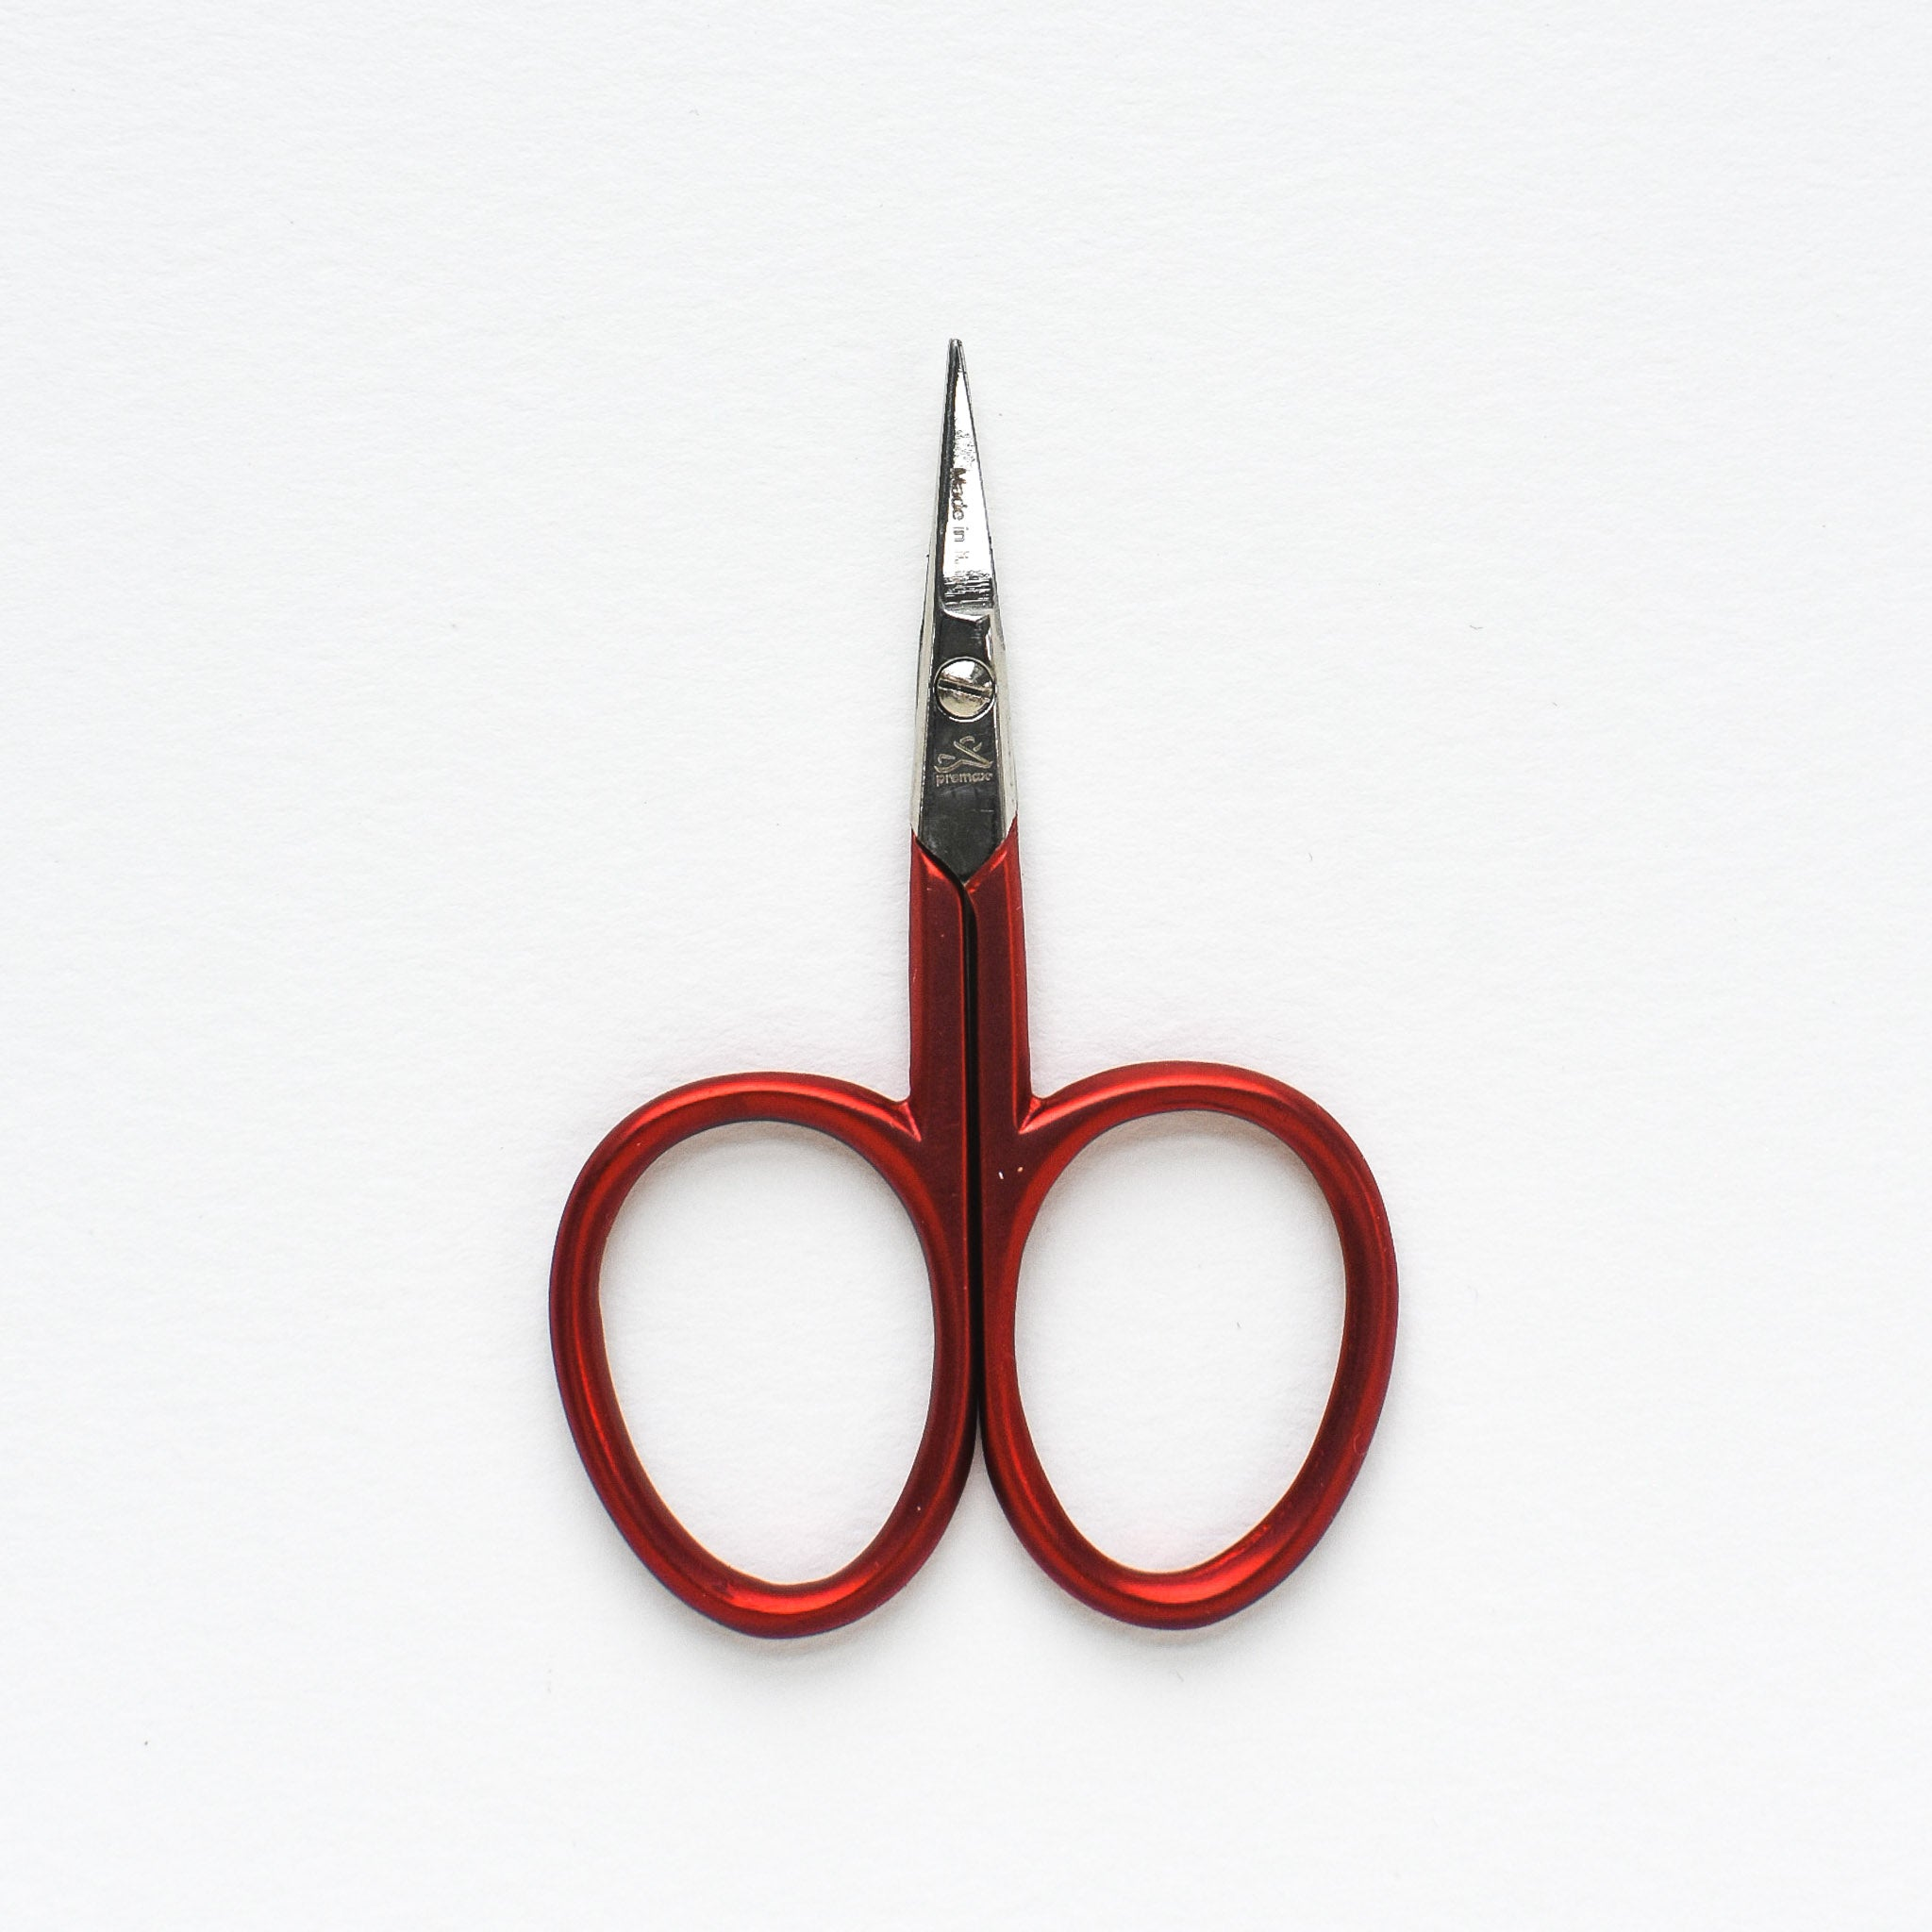 Tiny Red Embroidery Scissors